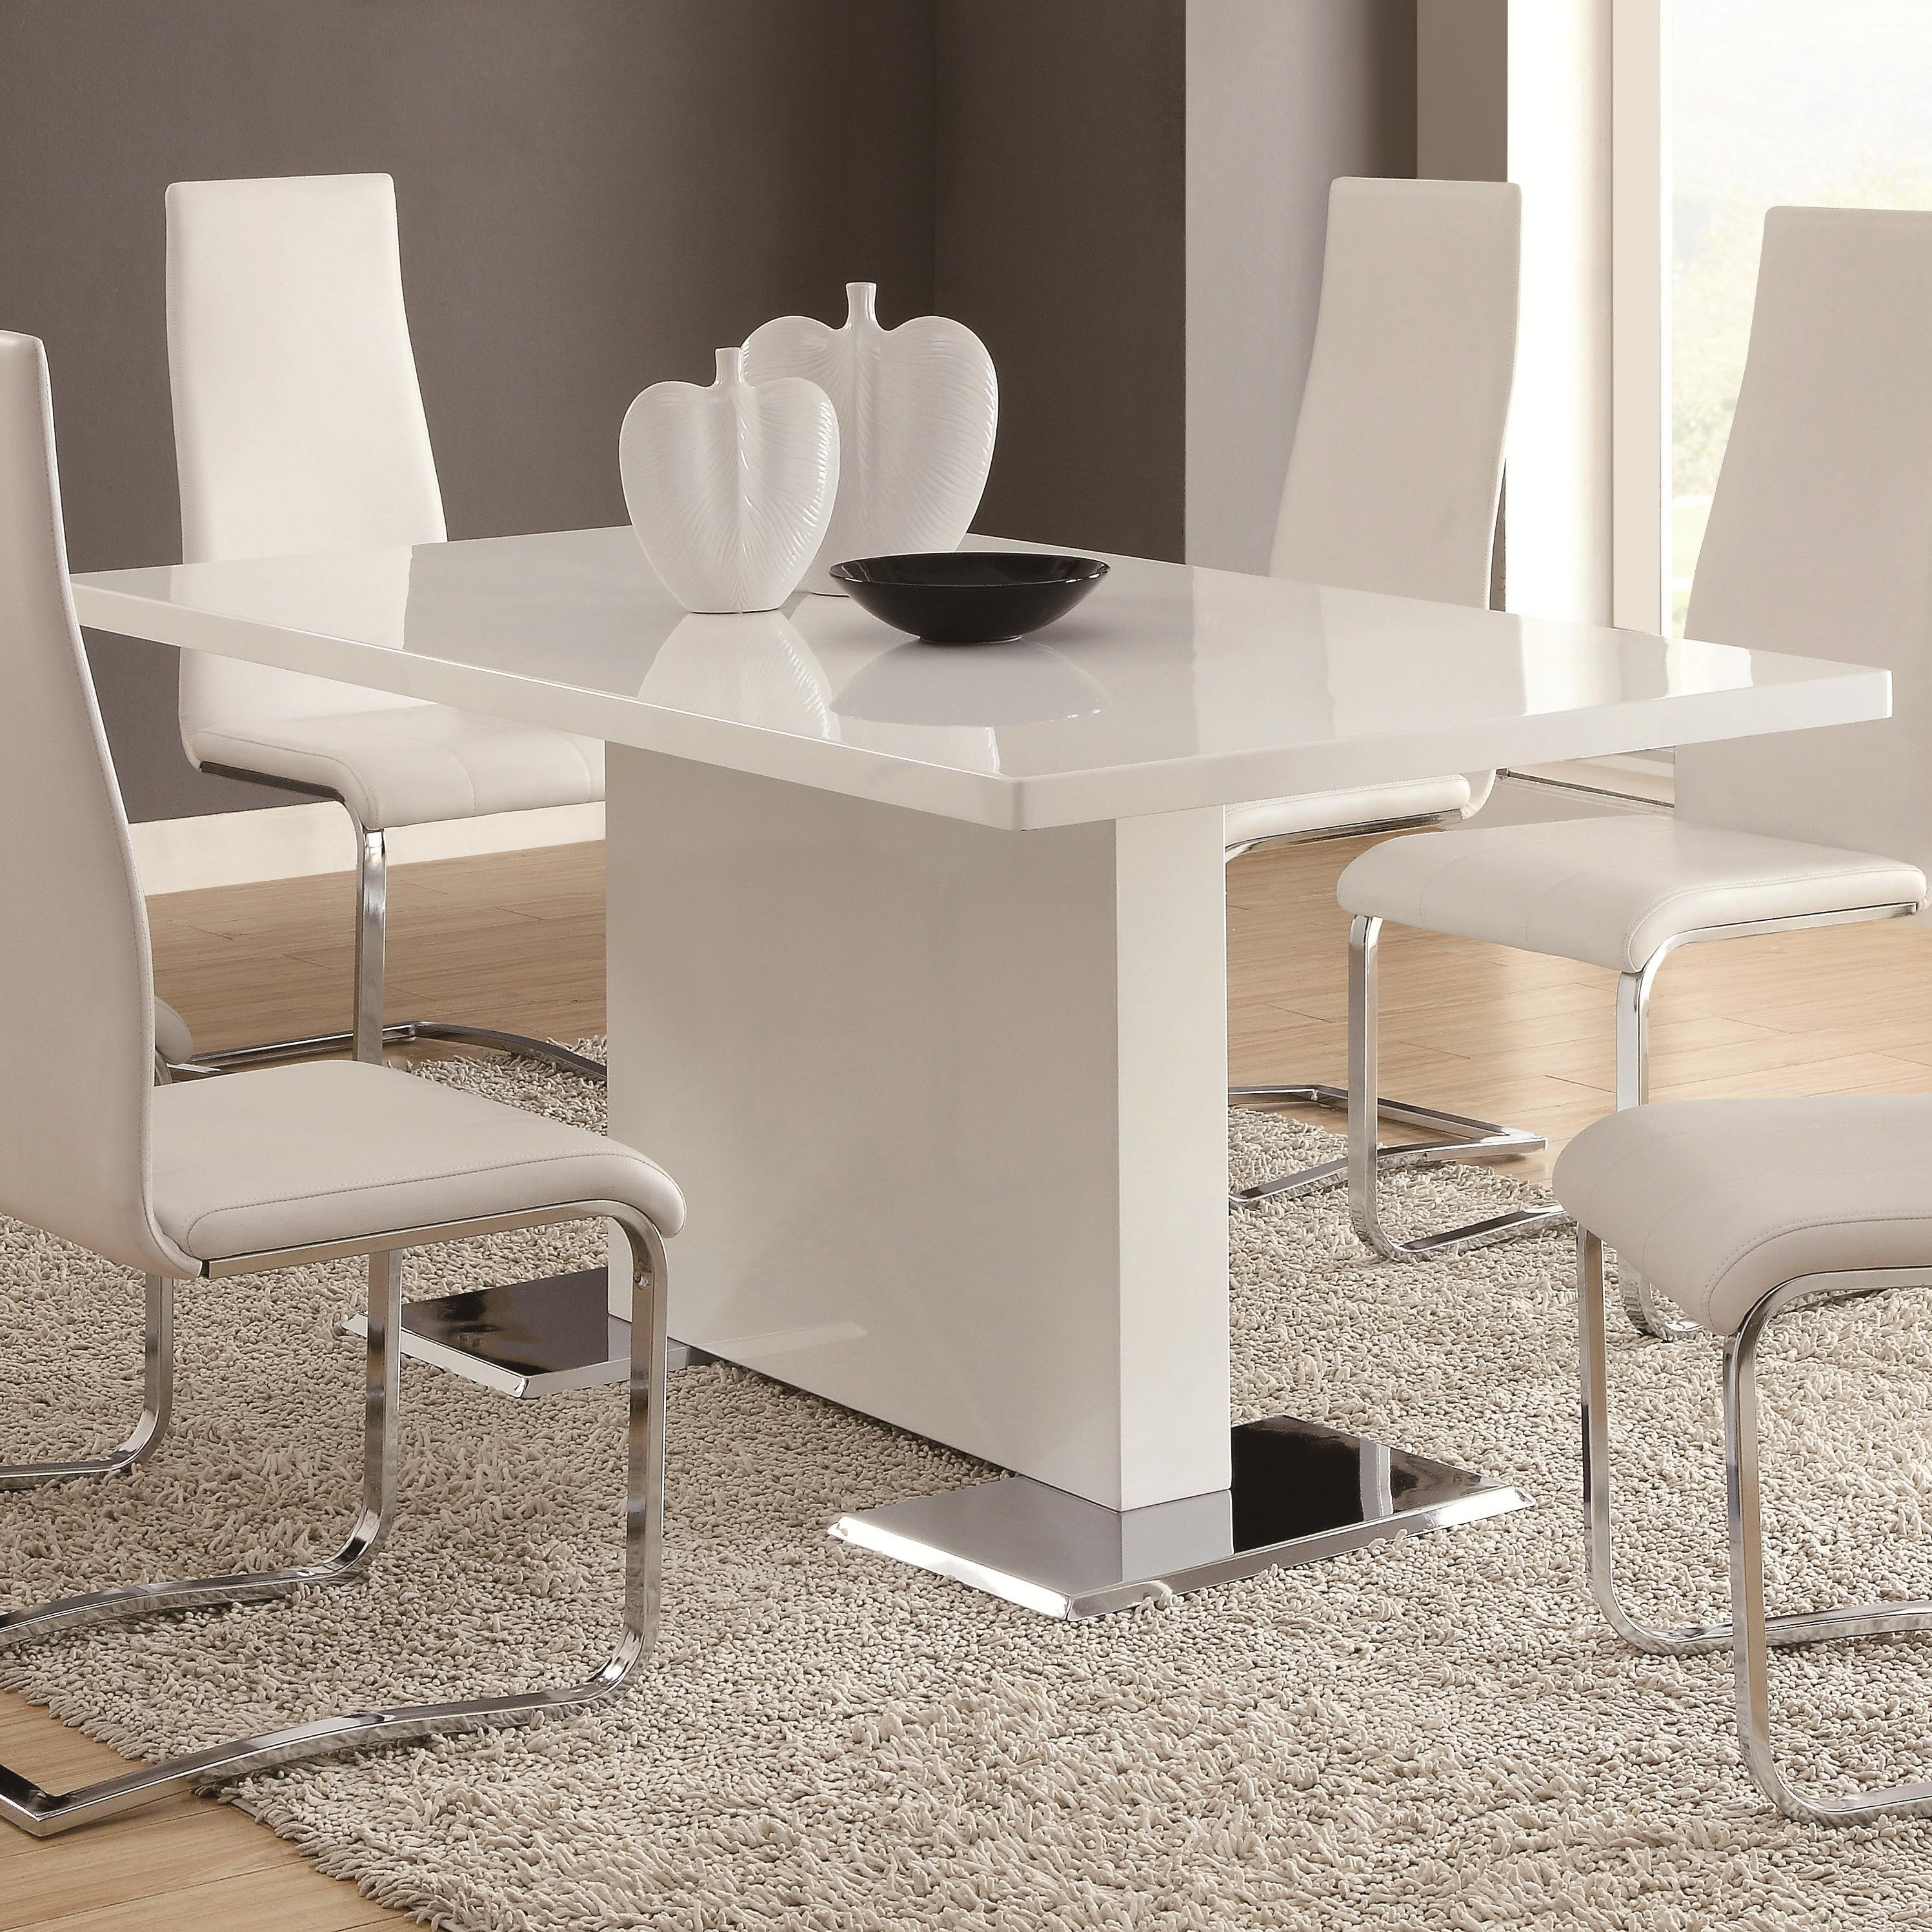 Coaster Modern Dining 102310 White Dining Table With Chrome Metal Regarding Current Modern Dining Room Furniture (Gallery 1 of 25)